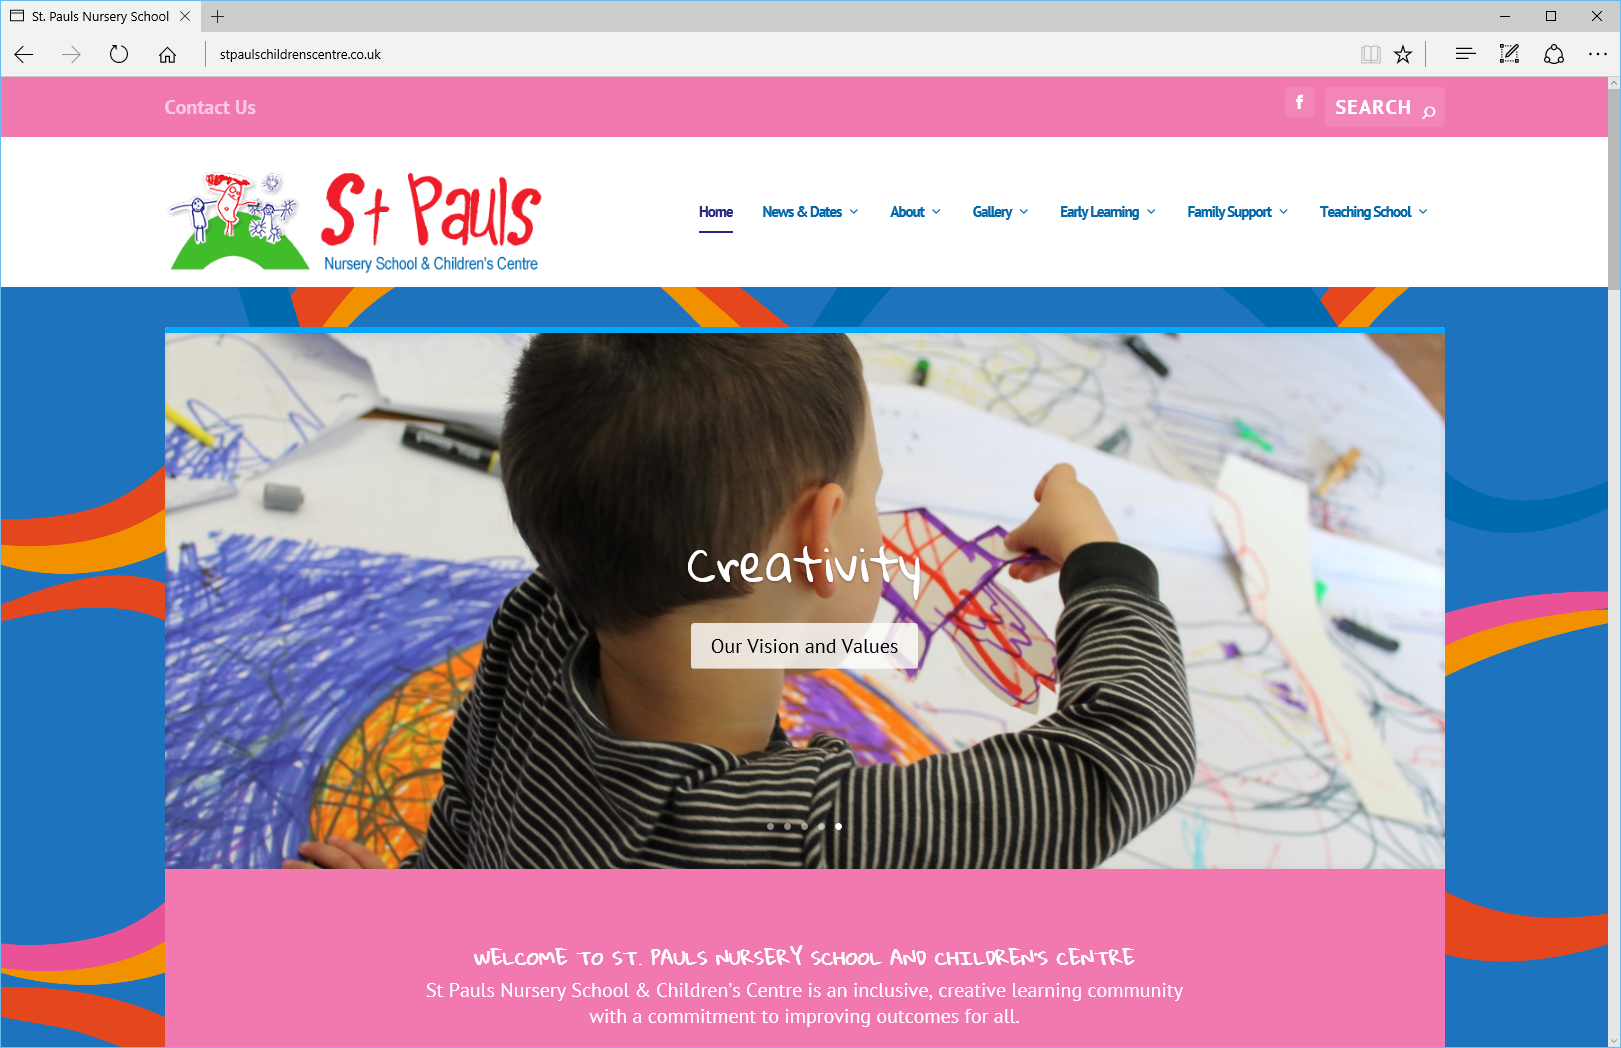 Chaos Created launches new website for St. Pauls Nursery School and Children's Centre